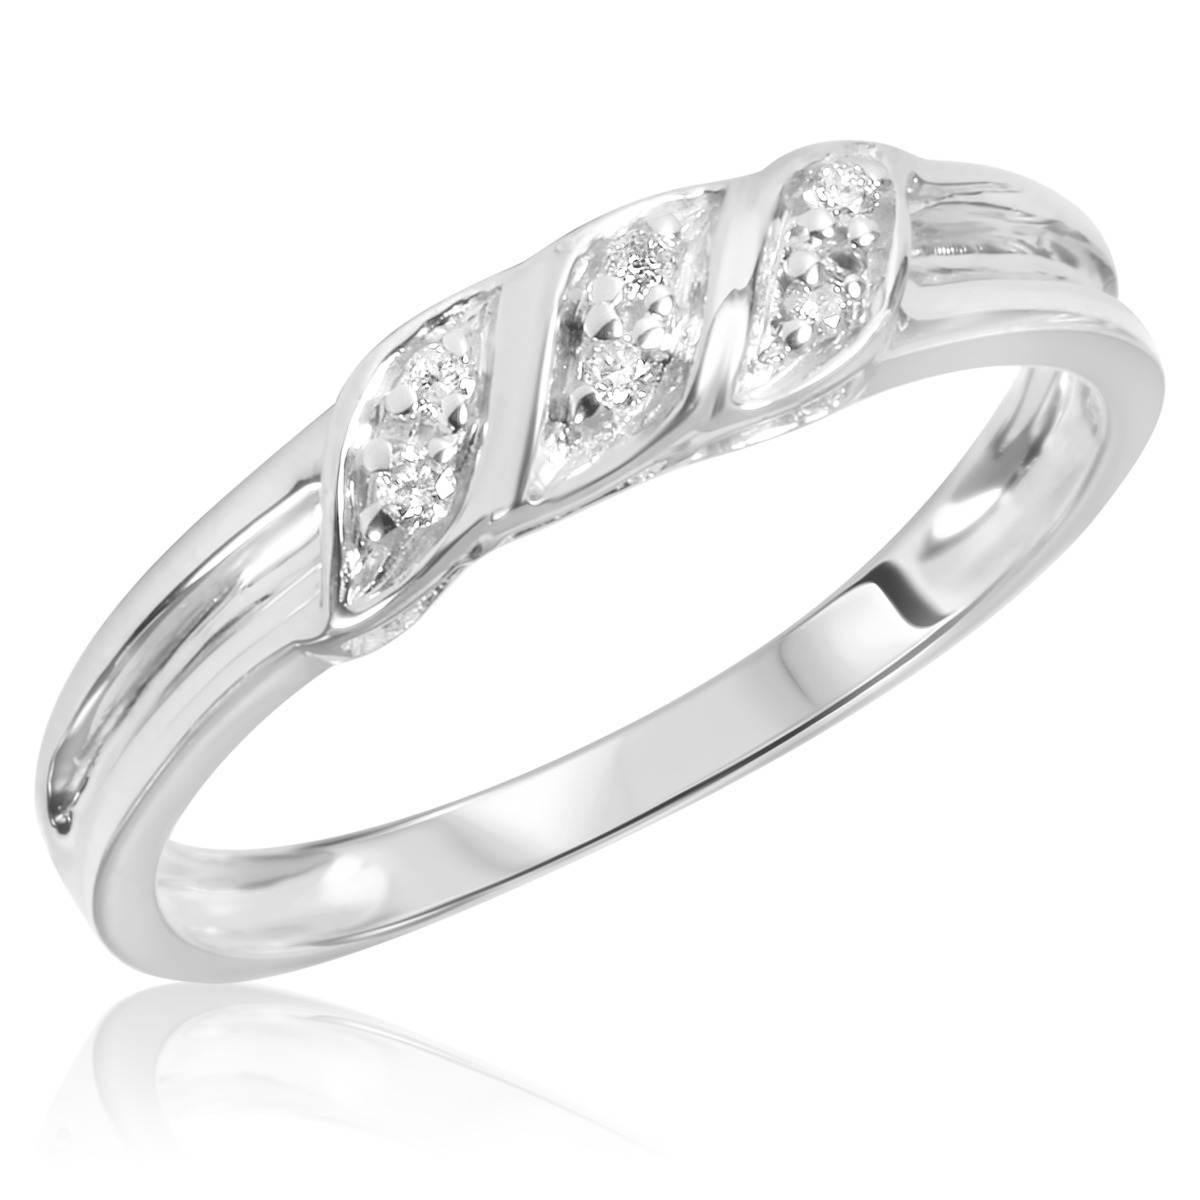 ... Ring, Wedding Band, Men's Wedding Band Matching Set 10K White Gold